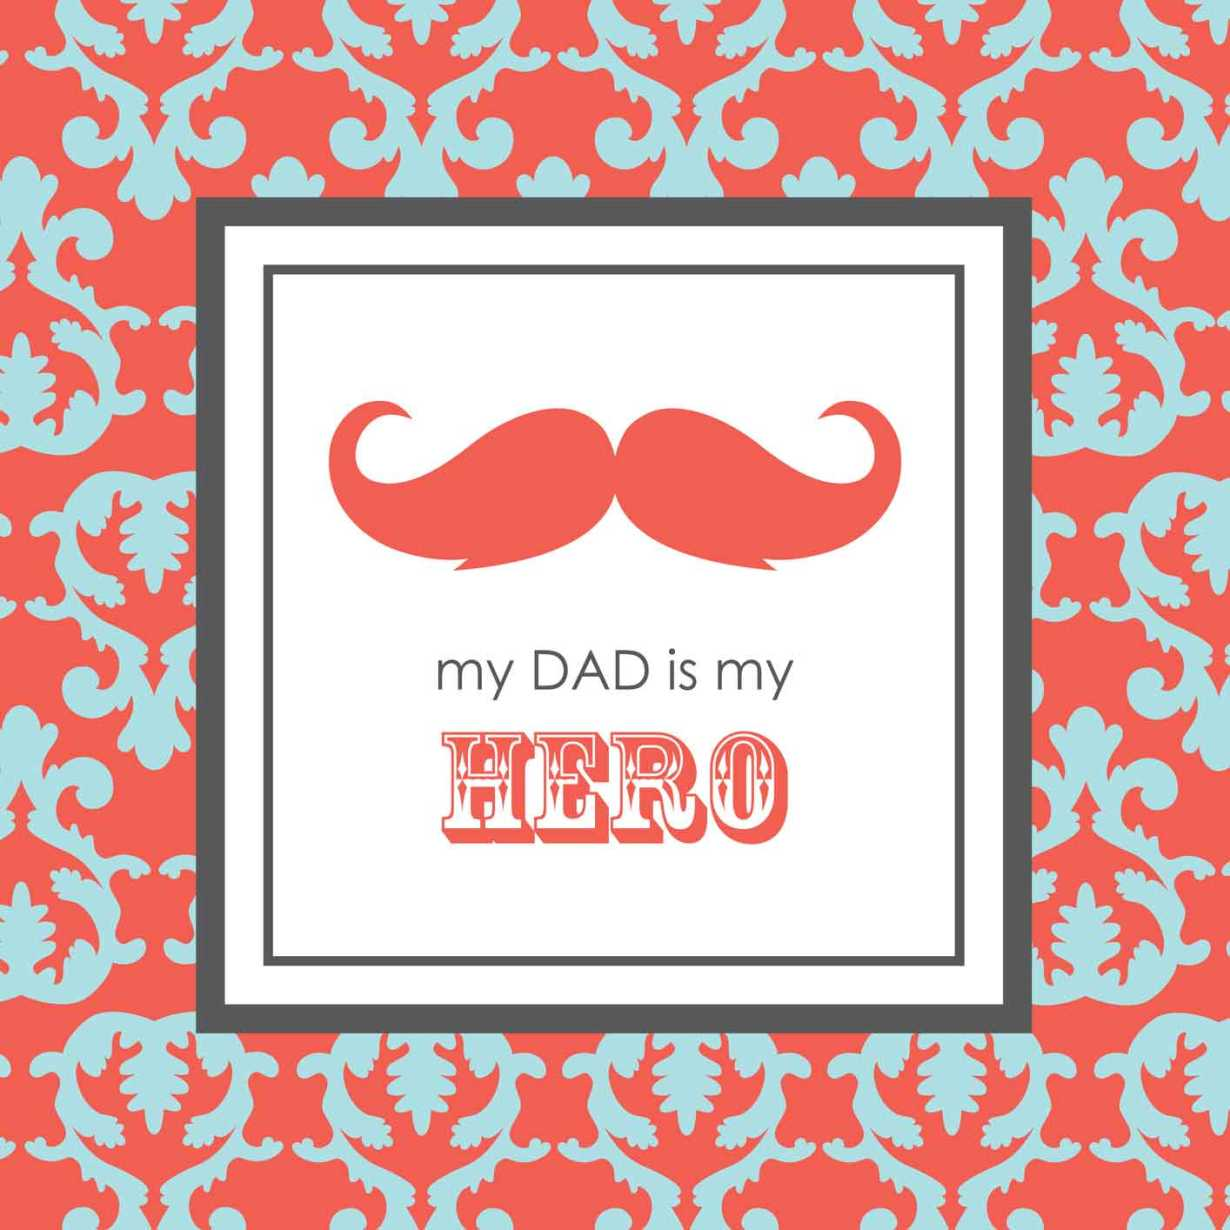 I Love Father- Fathers Day Image